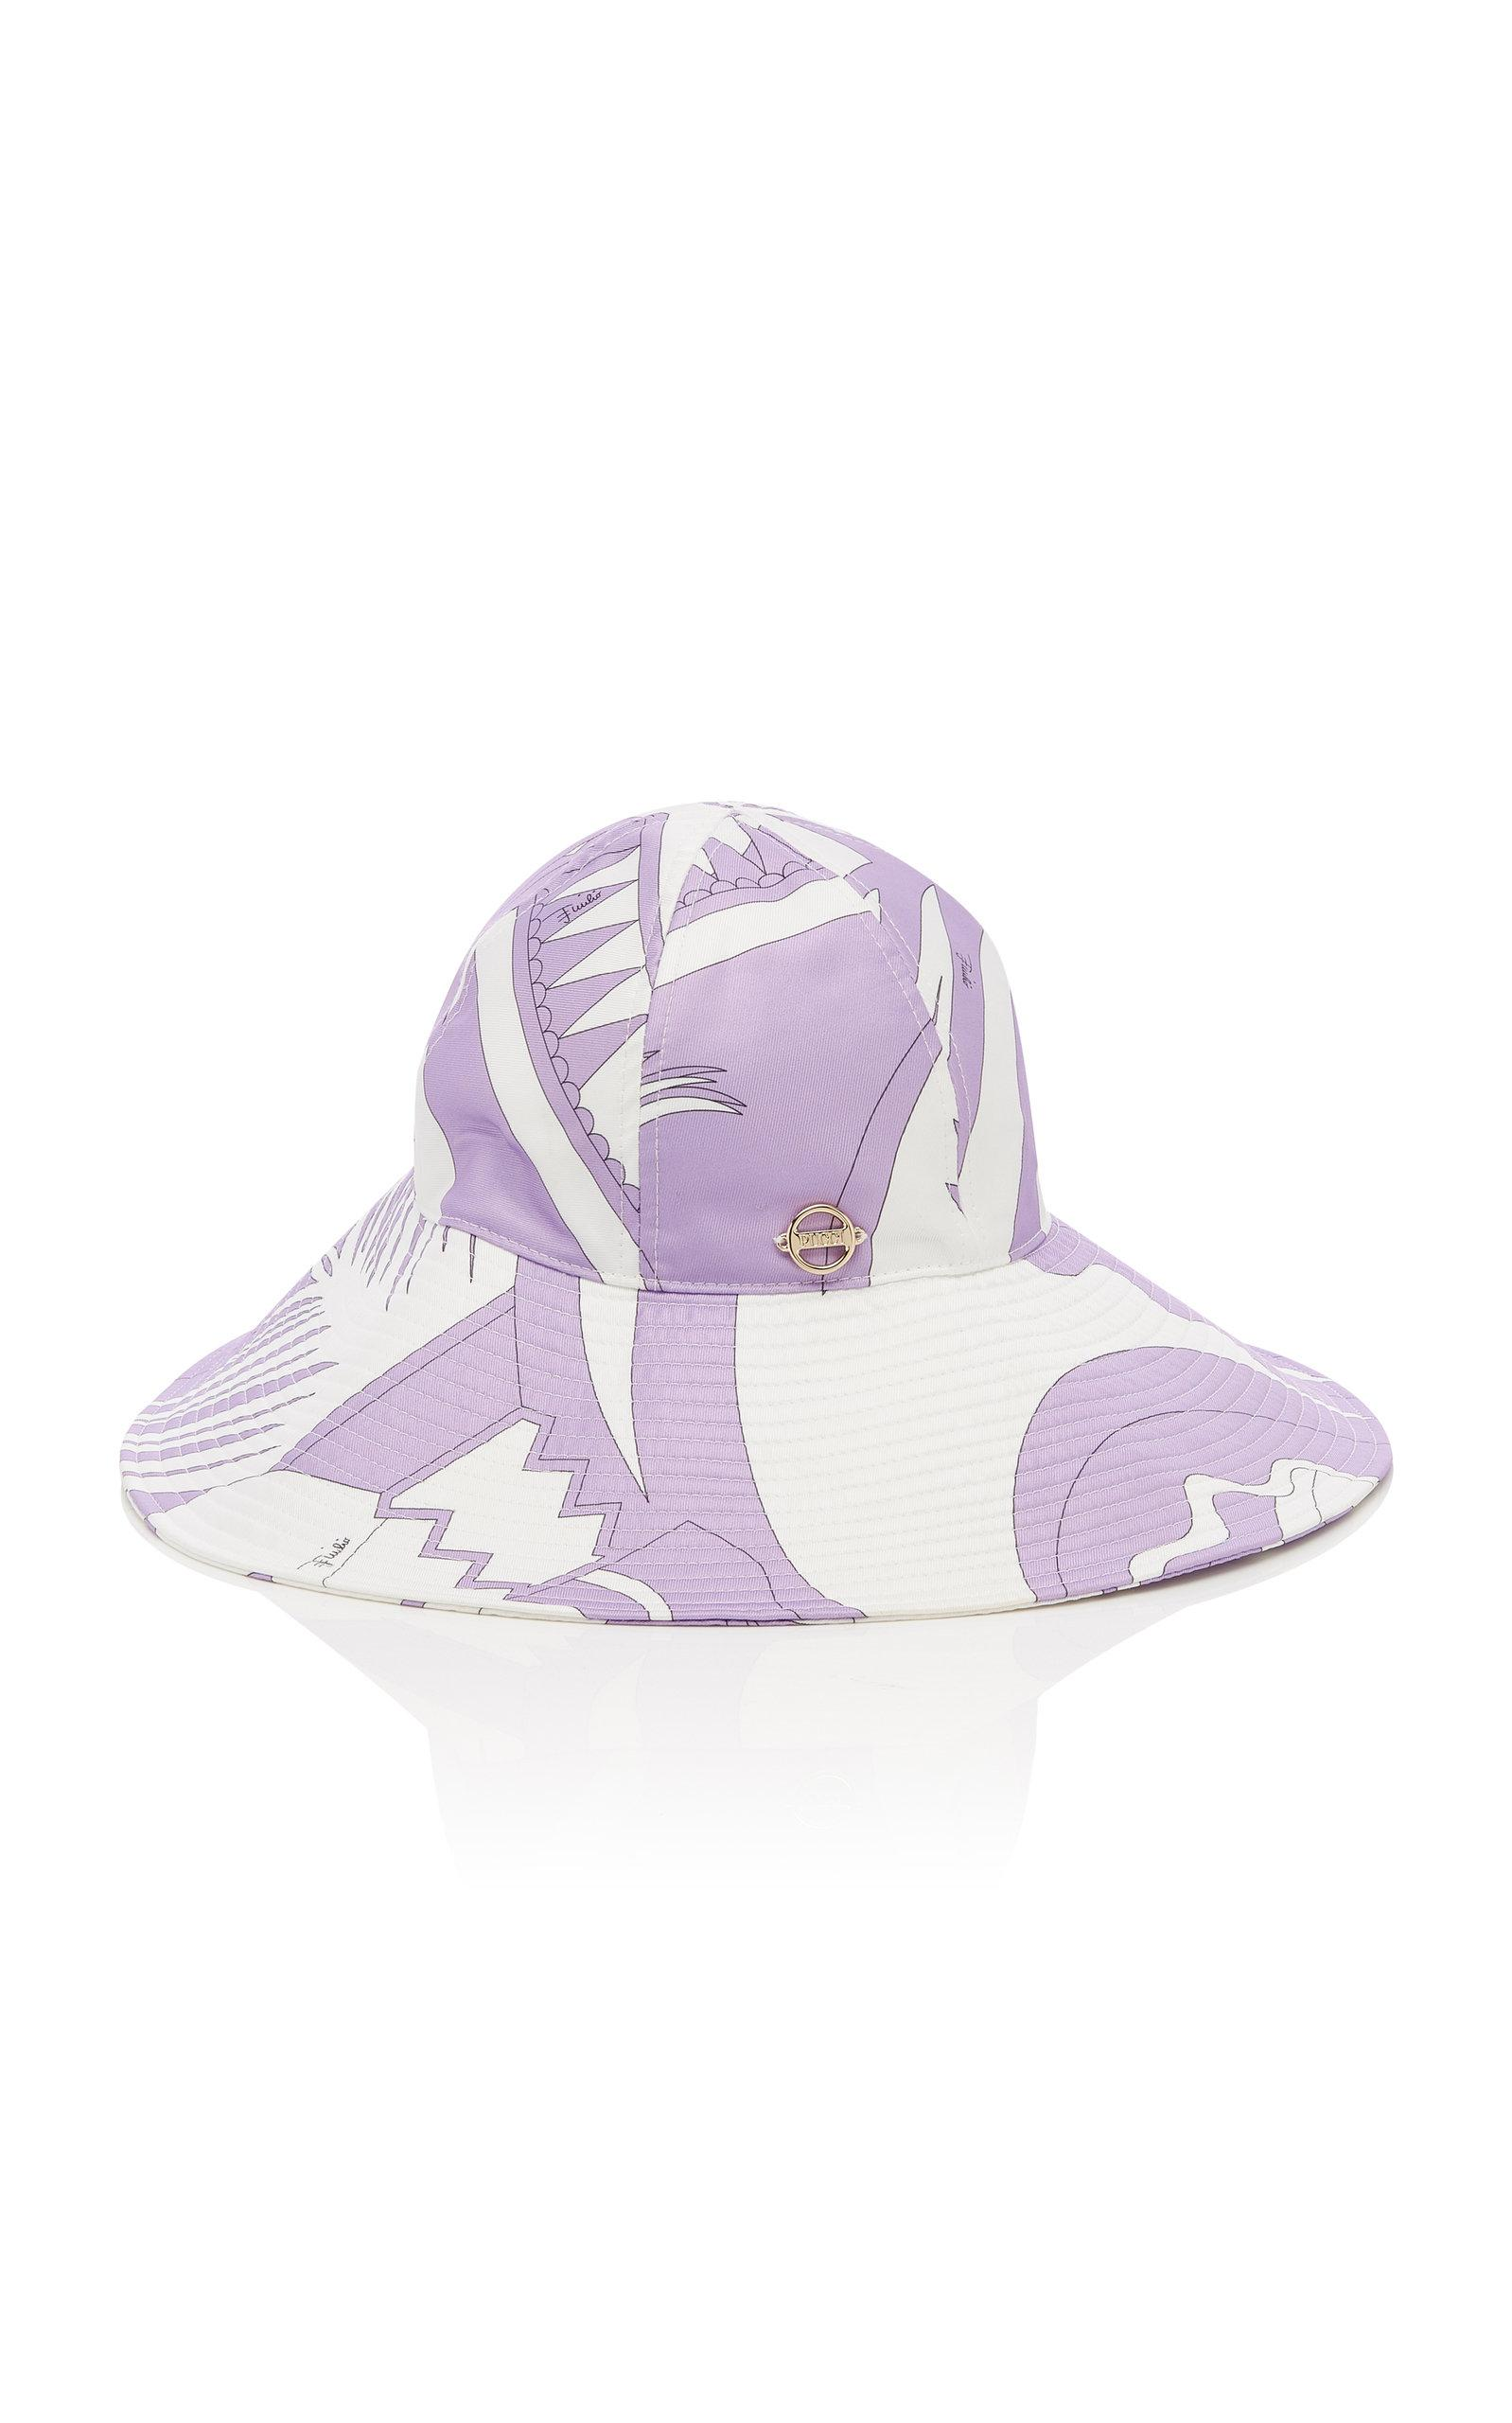 052552a6990eb Emilio Pucci - Purple Printed Wide-brimmed Bucket Hat - Lyst. View  fullscreen